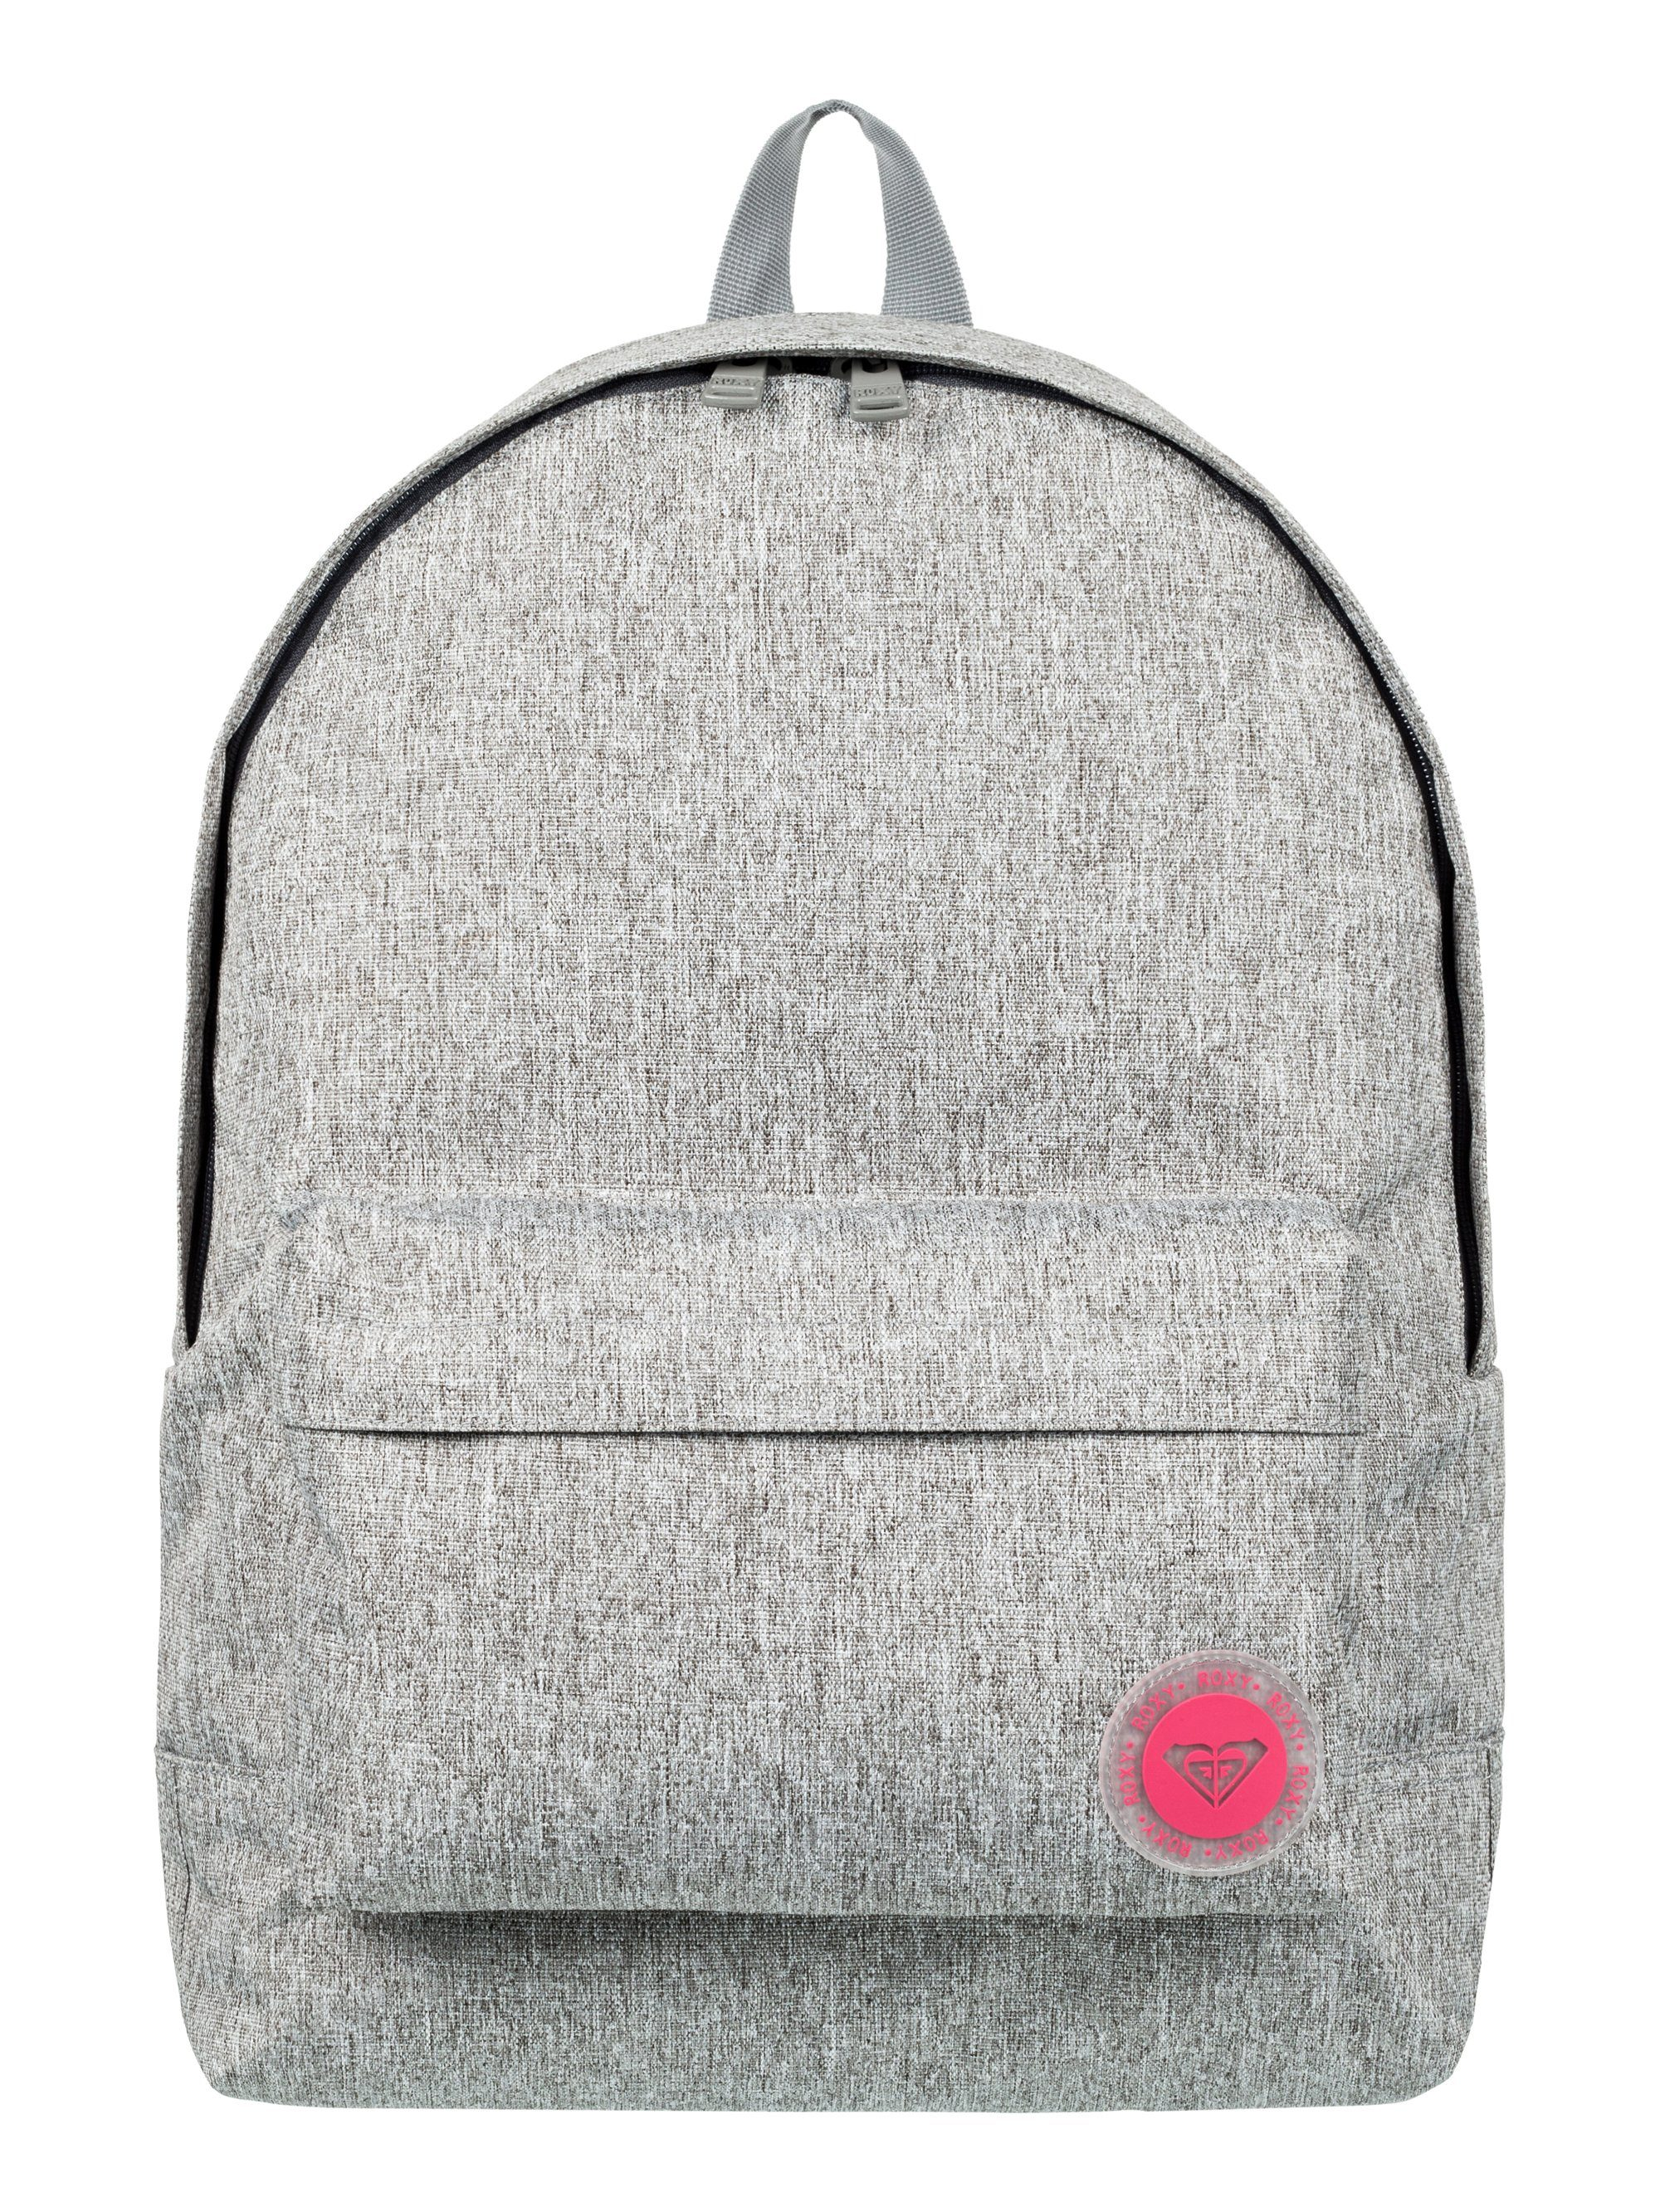 Roxy Kleiner Rucksack »Sugar Baby Heather«